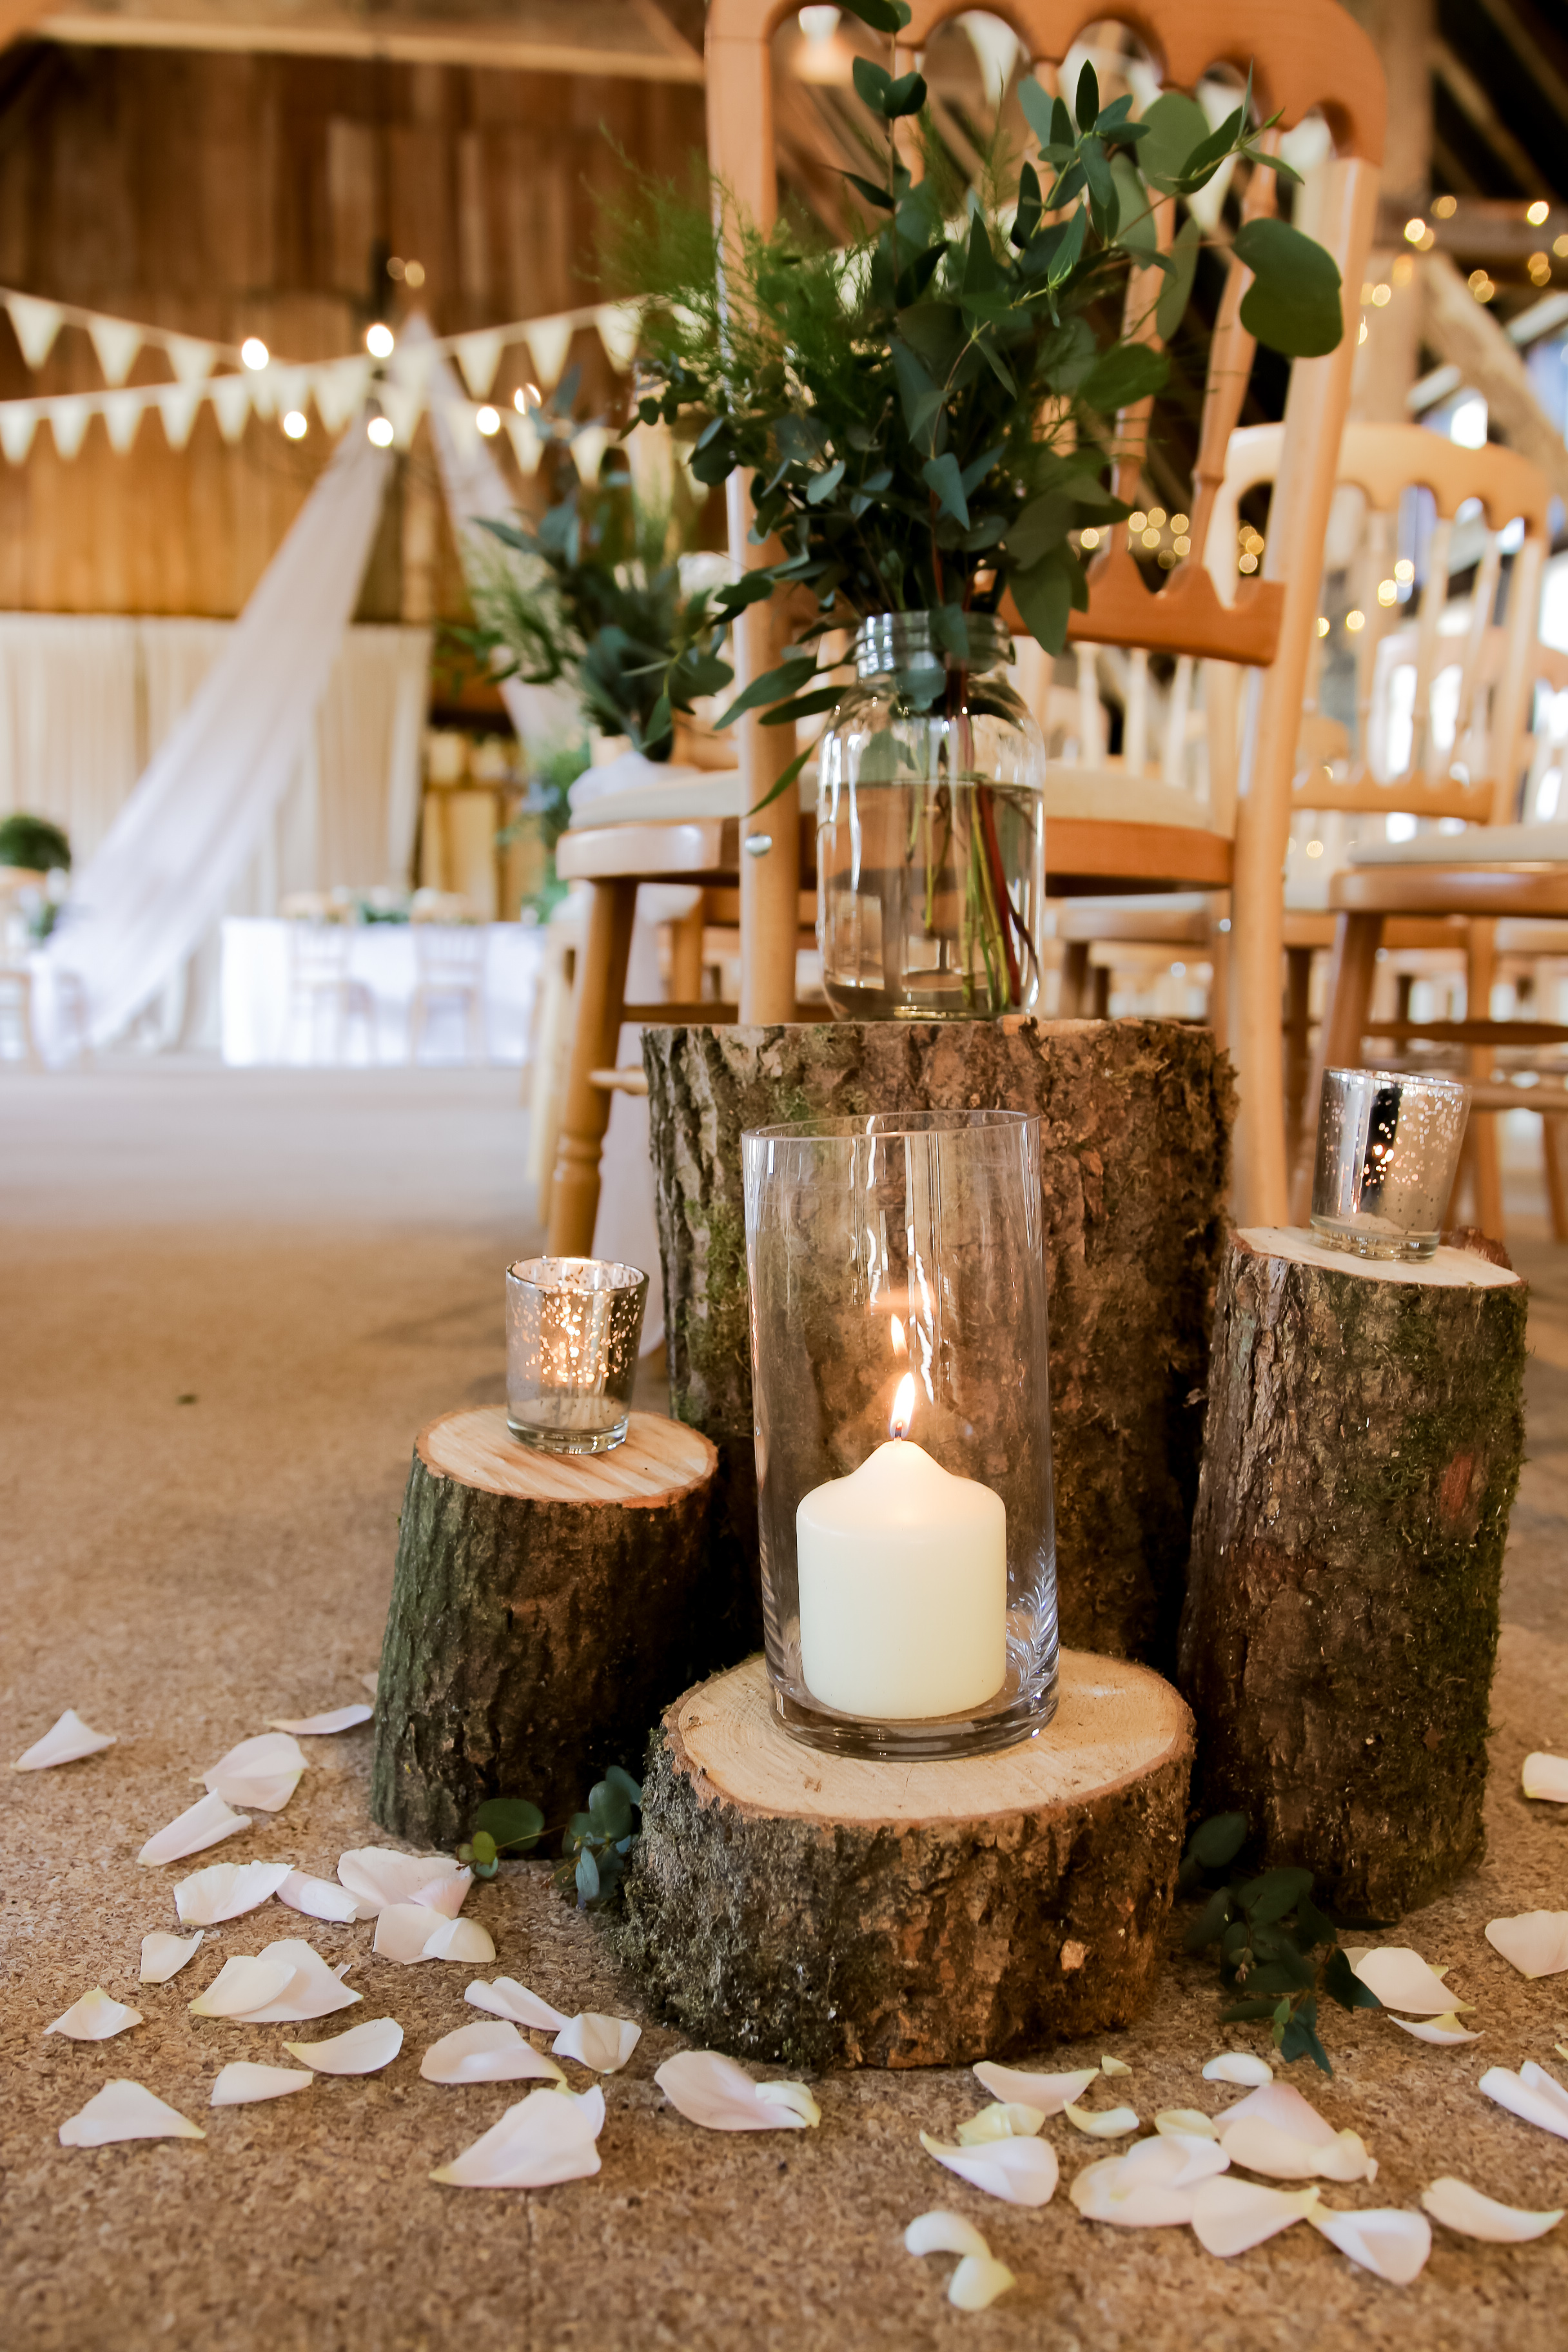 RUSTICWooden LogsAisle Decor - Includes 4 wooden stumps in varying sizes with 1 hurricane vase and candles with 2 tea lights and holders and greenery for the top. Prices are £40.00 each or £70.00 for both sides.